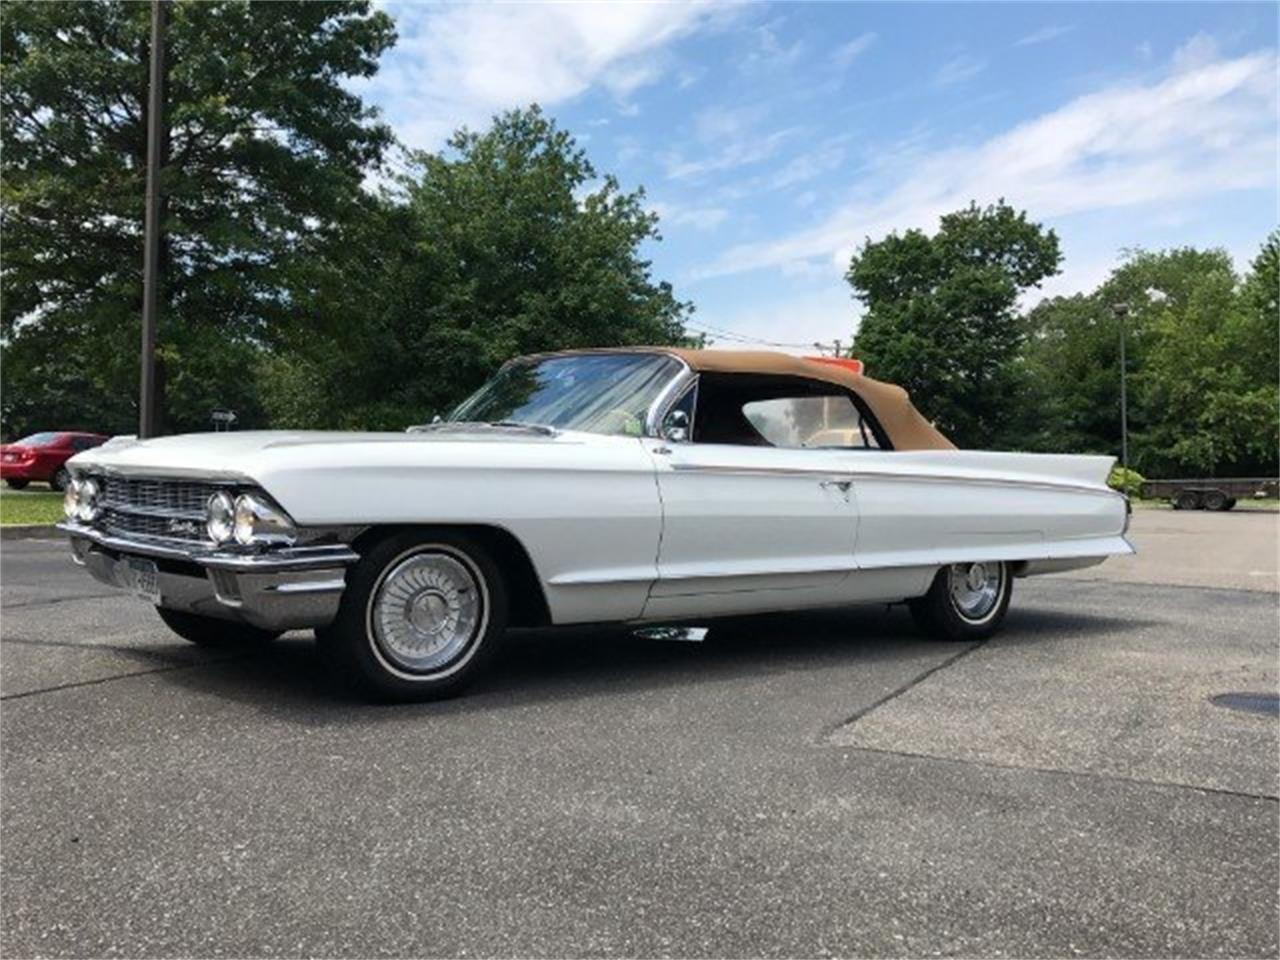 Large Picture of Classic '62 Cadillac Eldorado located in New York - $29,500.00 - LDHM